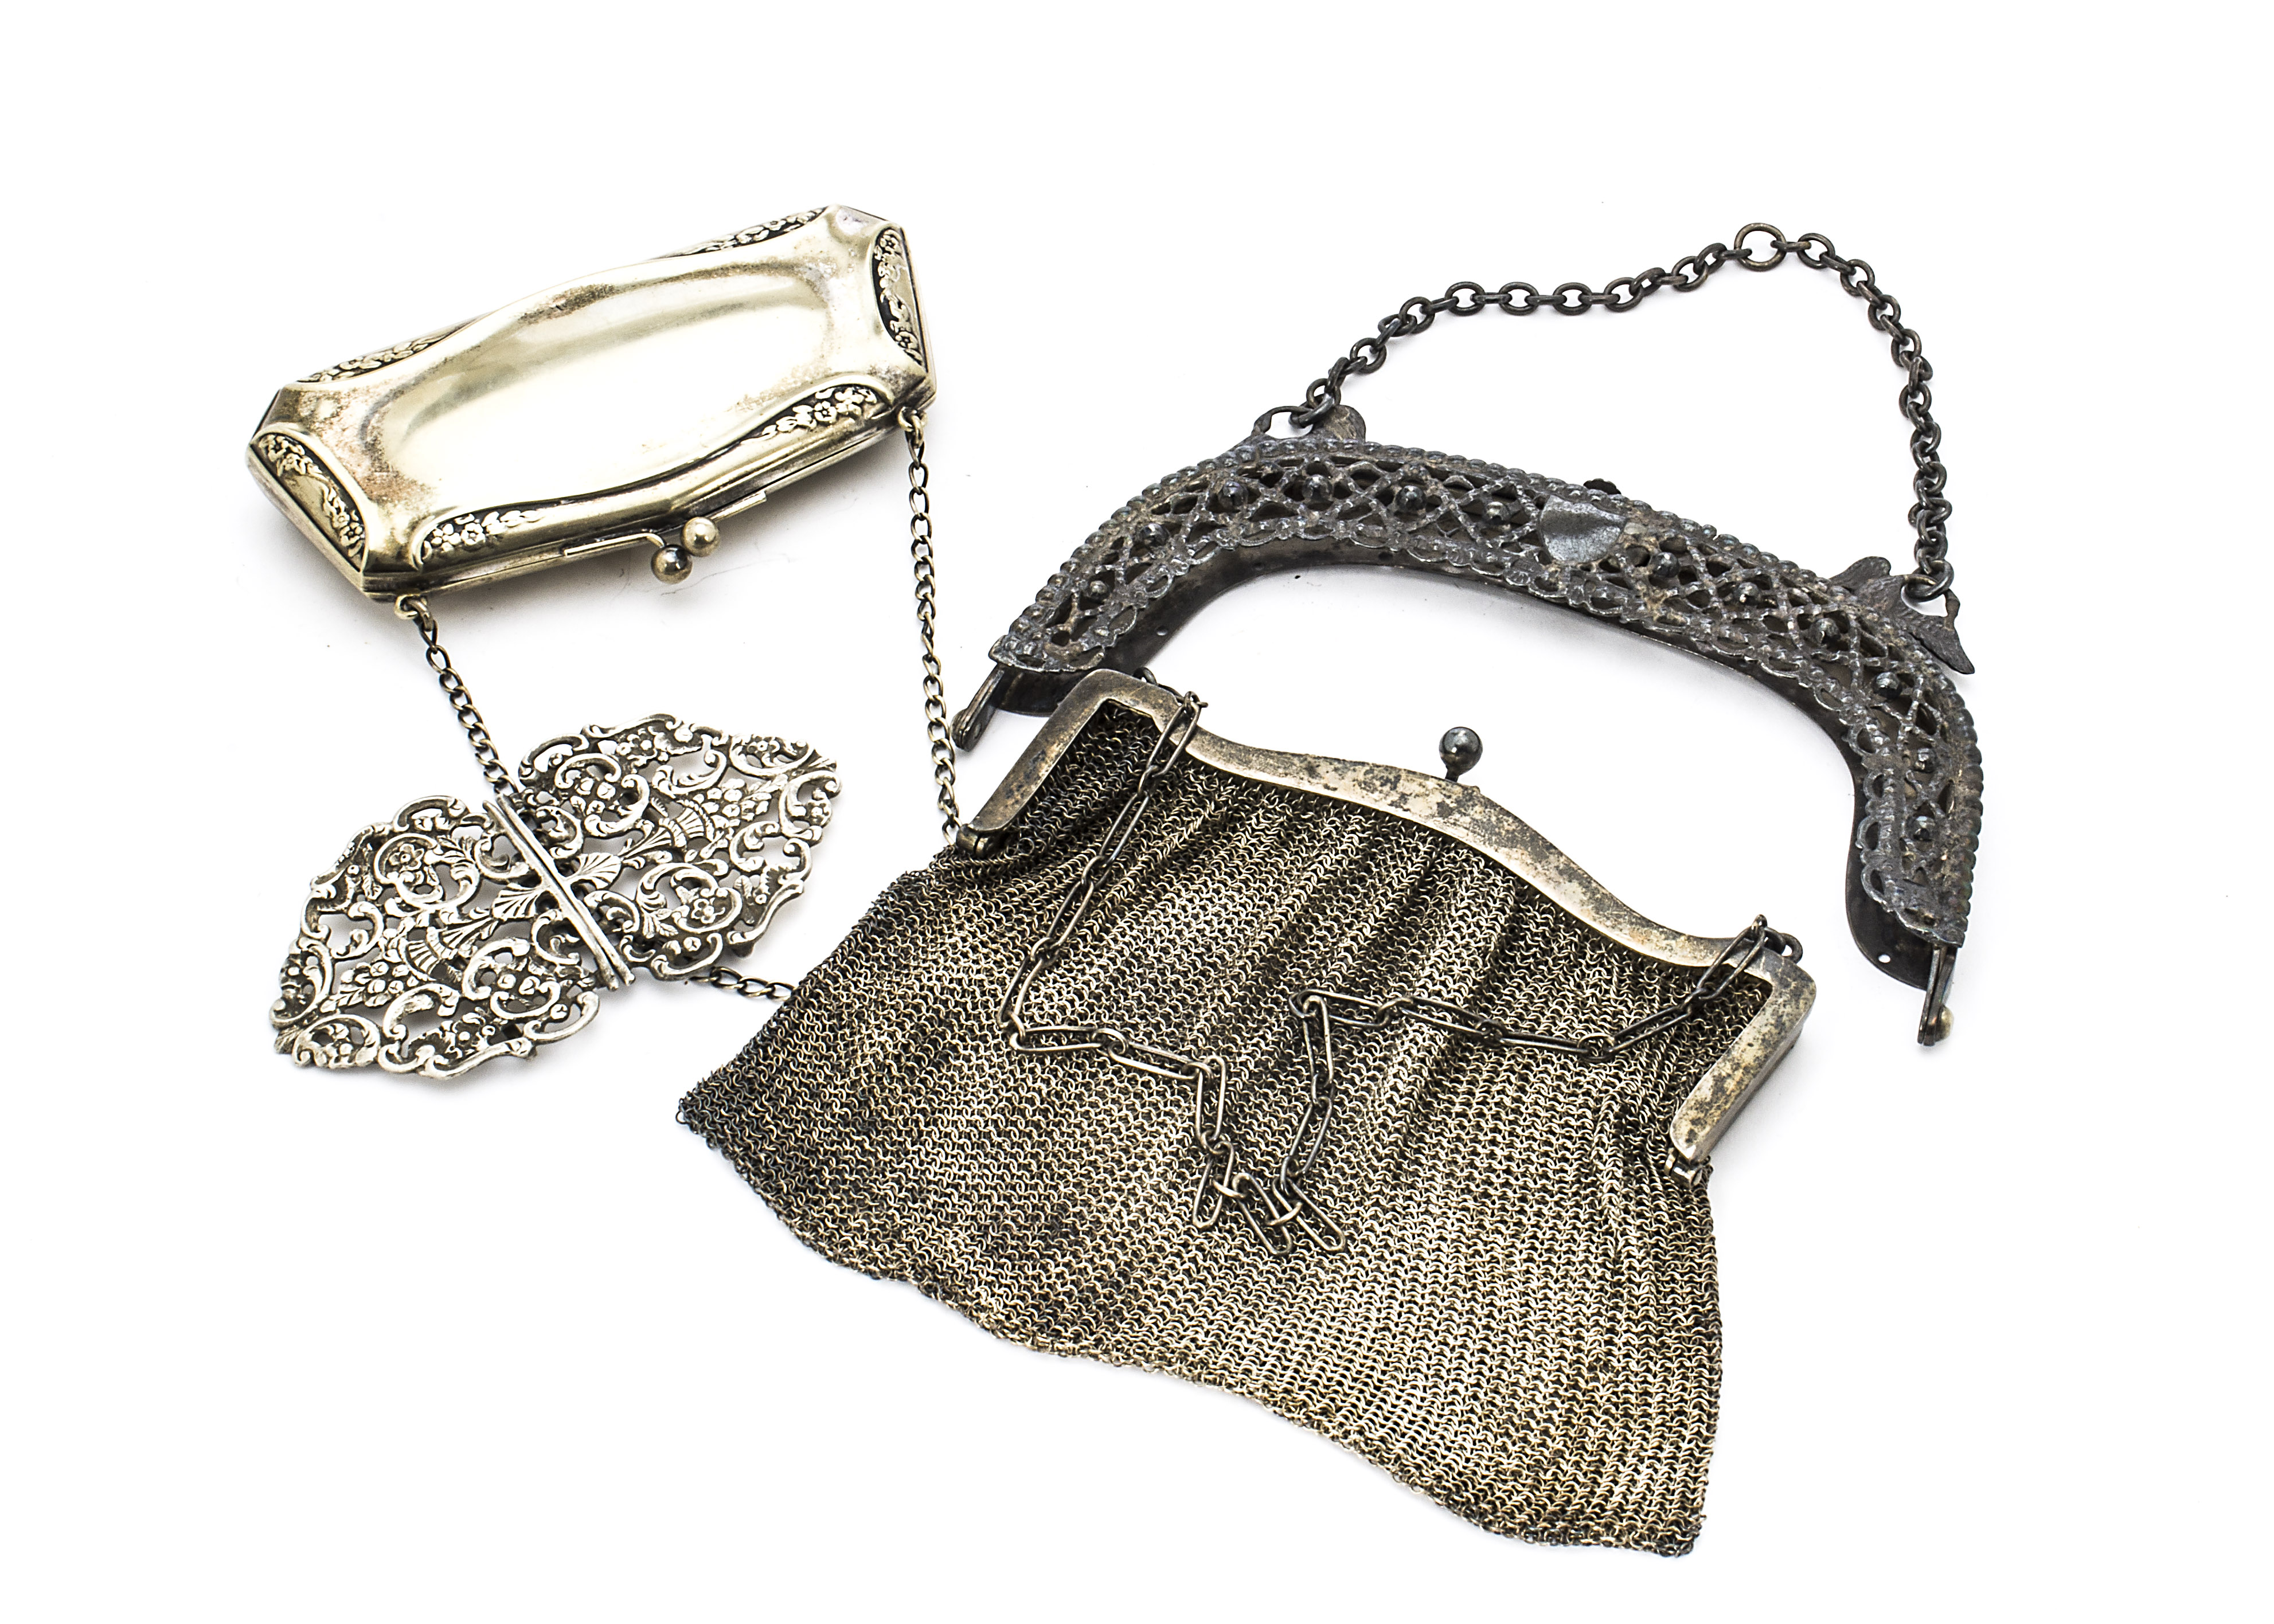 Lot 40 - A Victorian silver pierced nurse's belt buckle, together with a nice silver purse clasp, lacking its